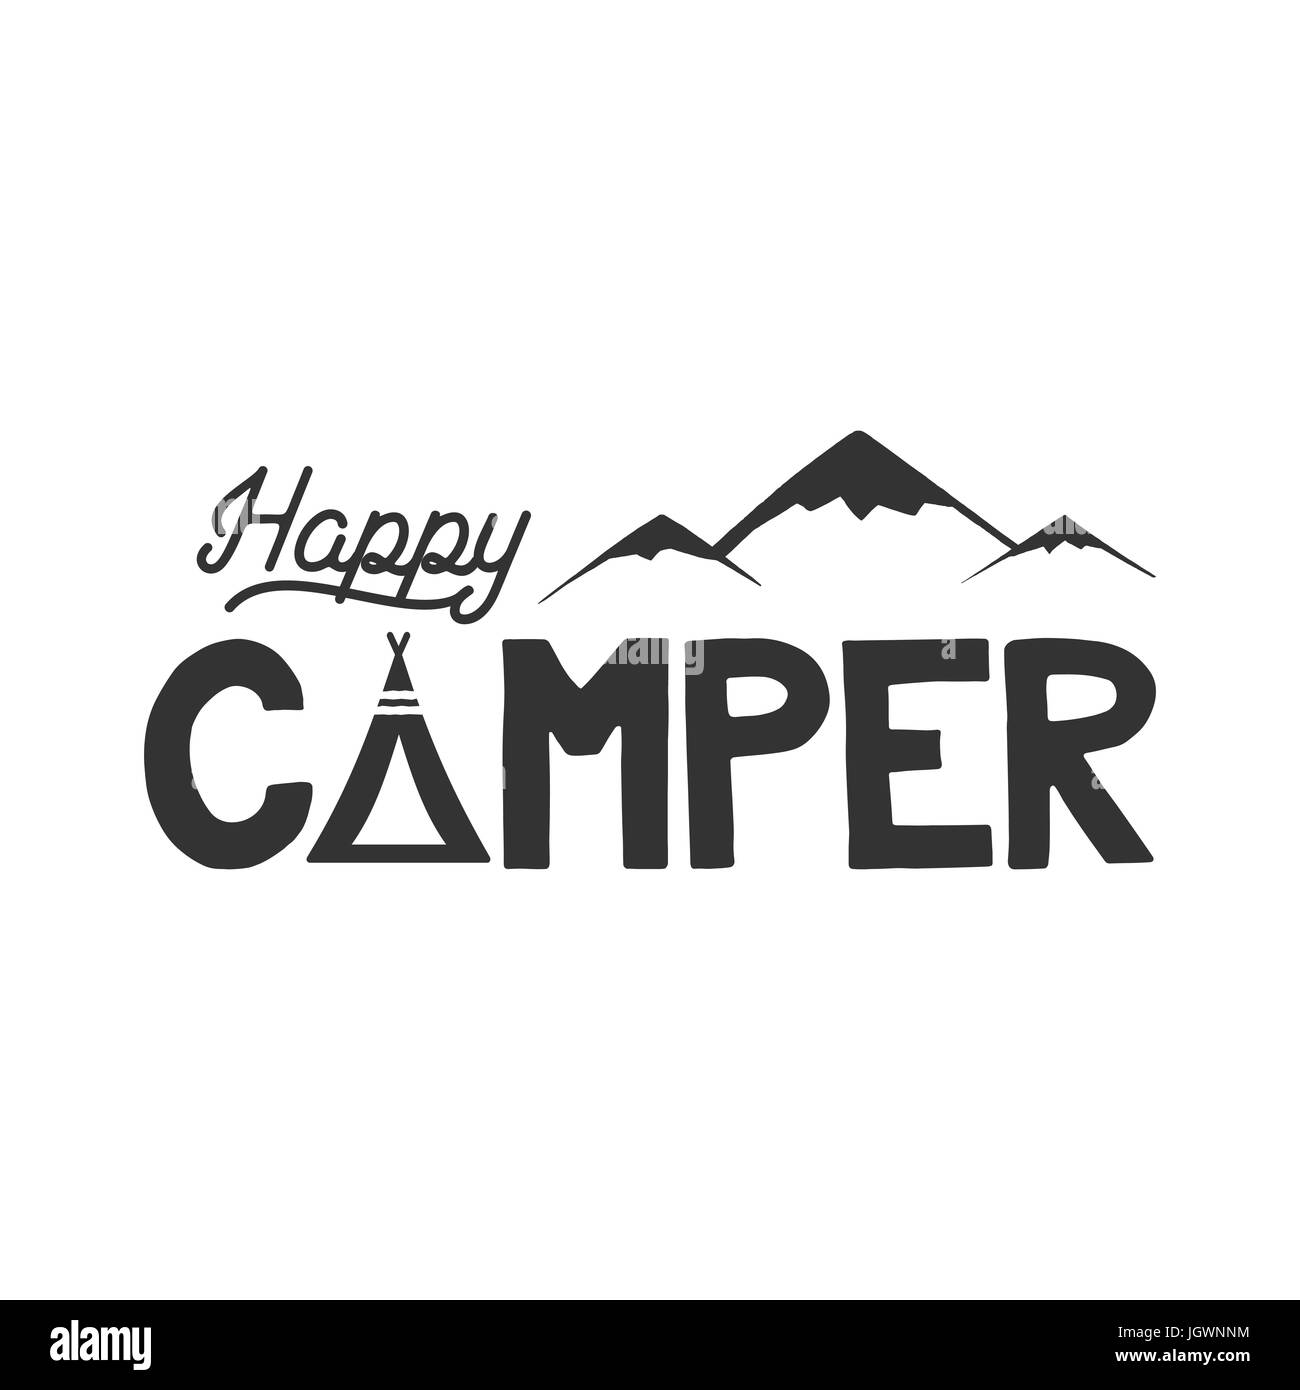 Happy Camper Poster Template Tent Mountains And Text Sign Retro Monochrome Design Hiking Emblem Stock Isolated On White Background